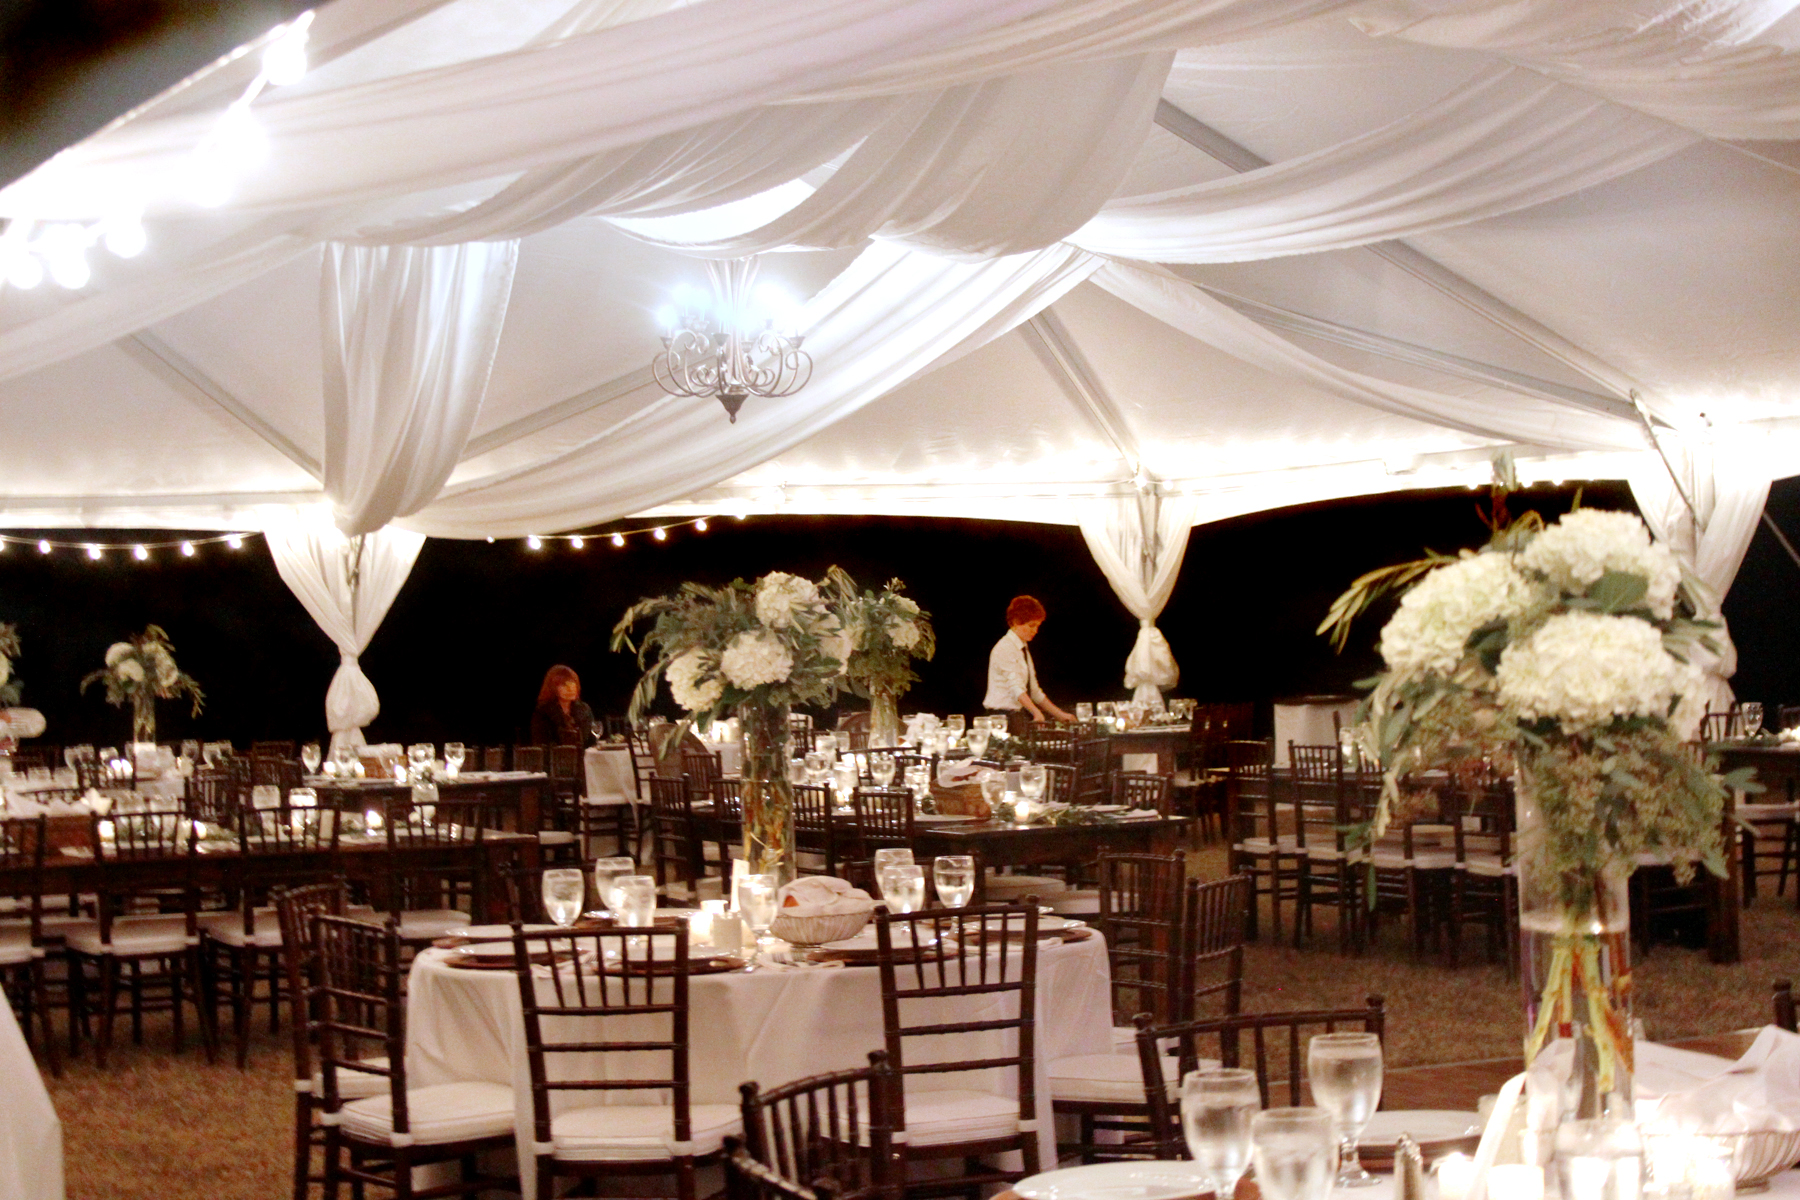 extra large folding chair captains gym frame tents - oconee event rentals   tents, farm tables, crossback chairs athens, ga